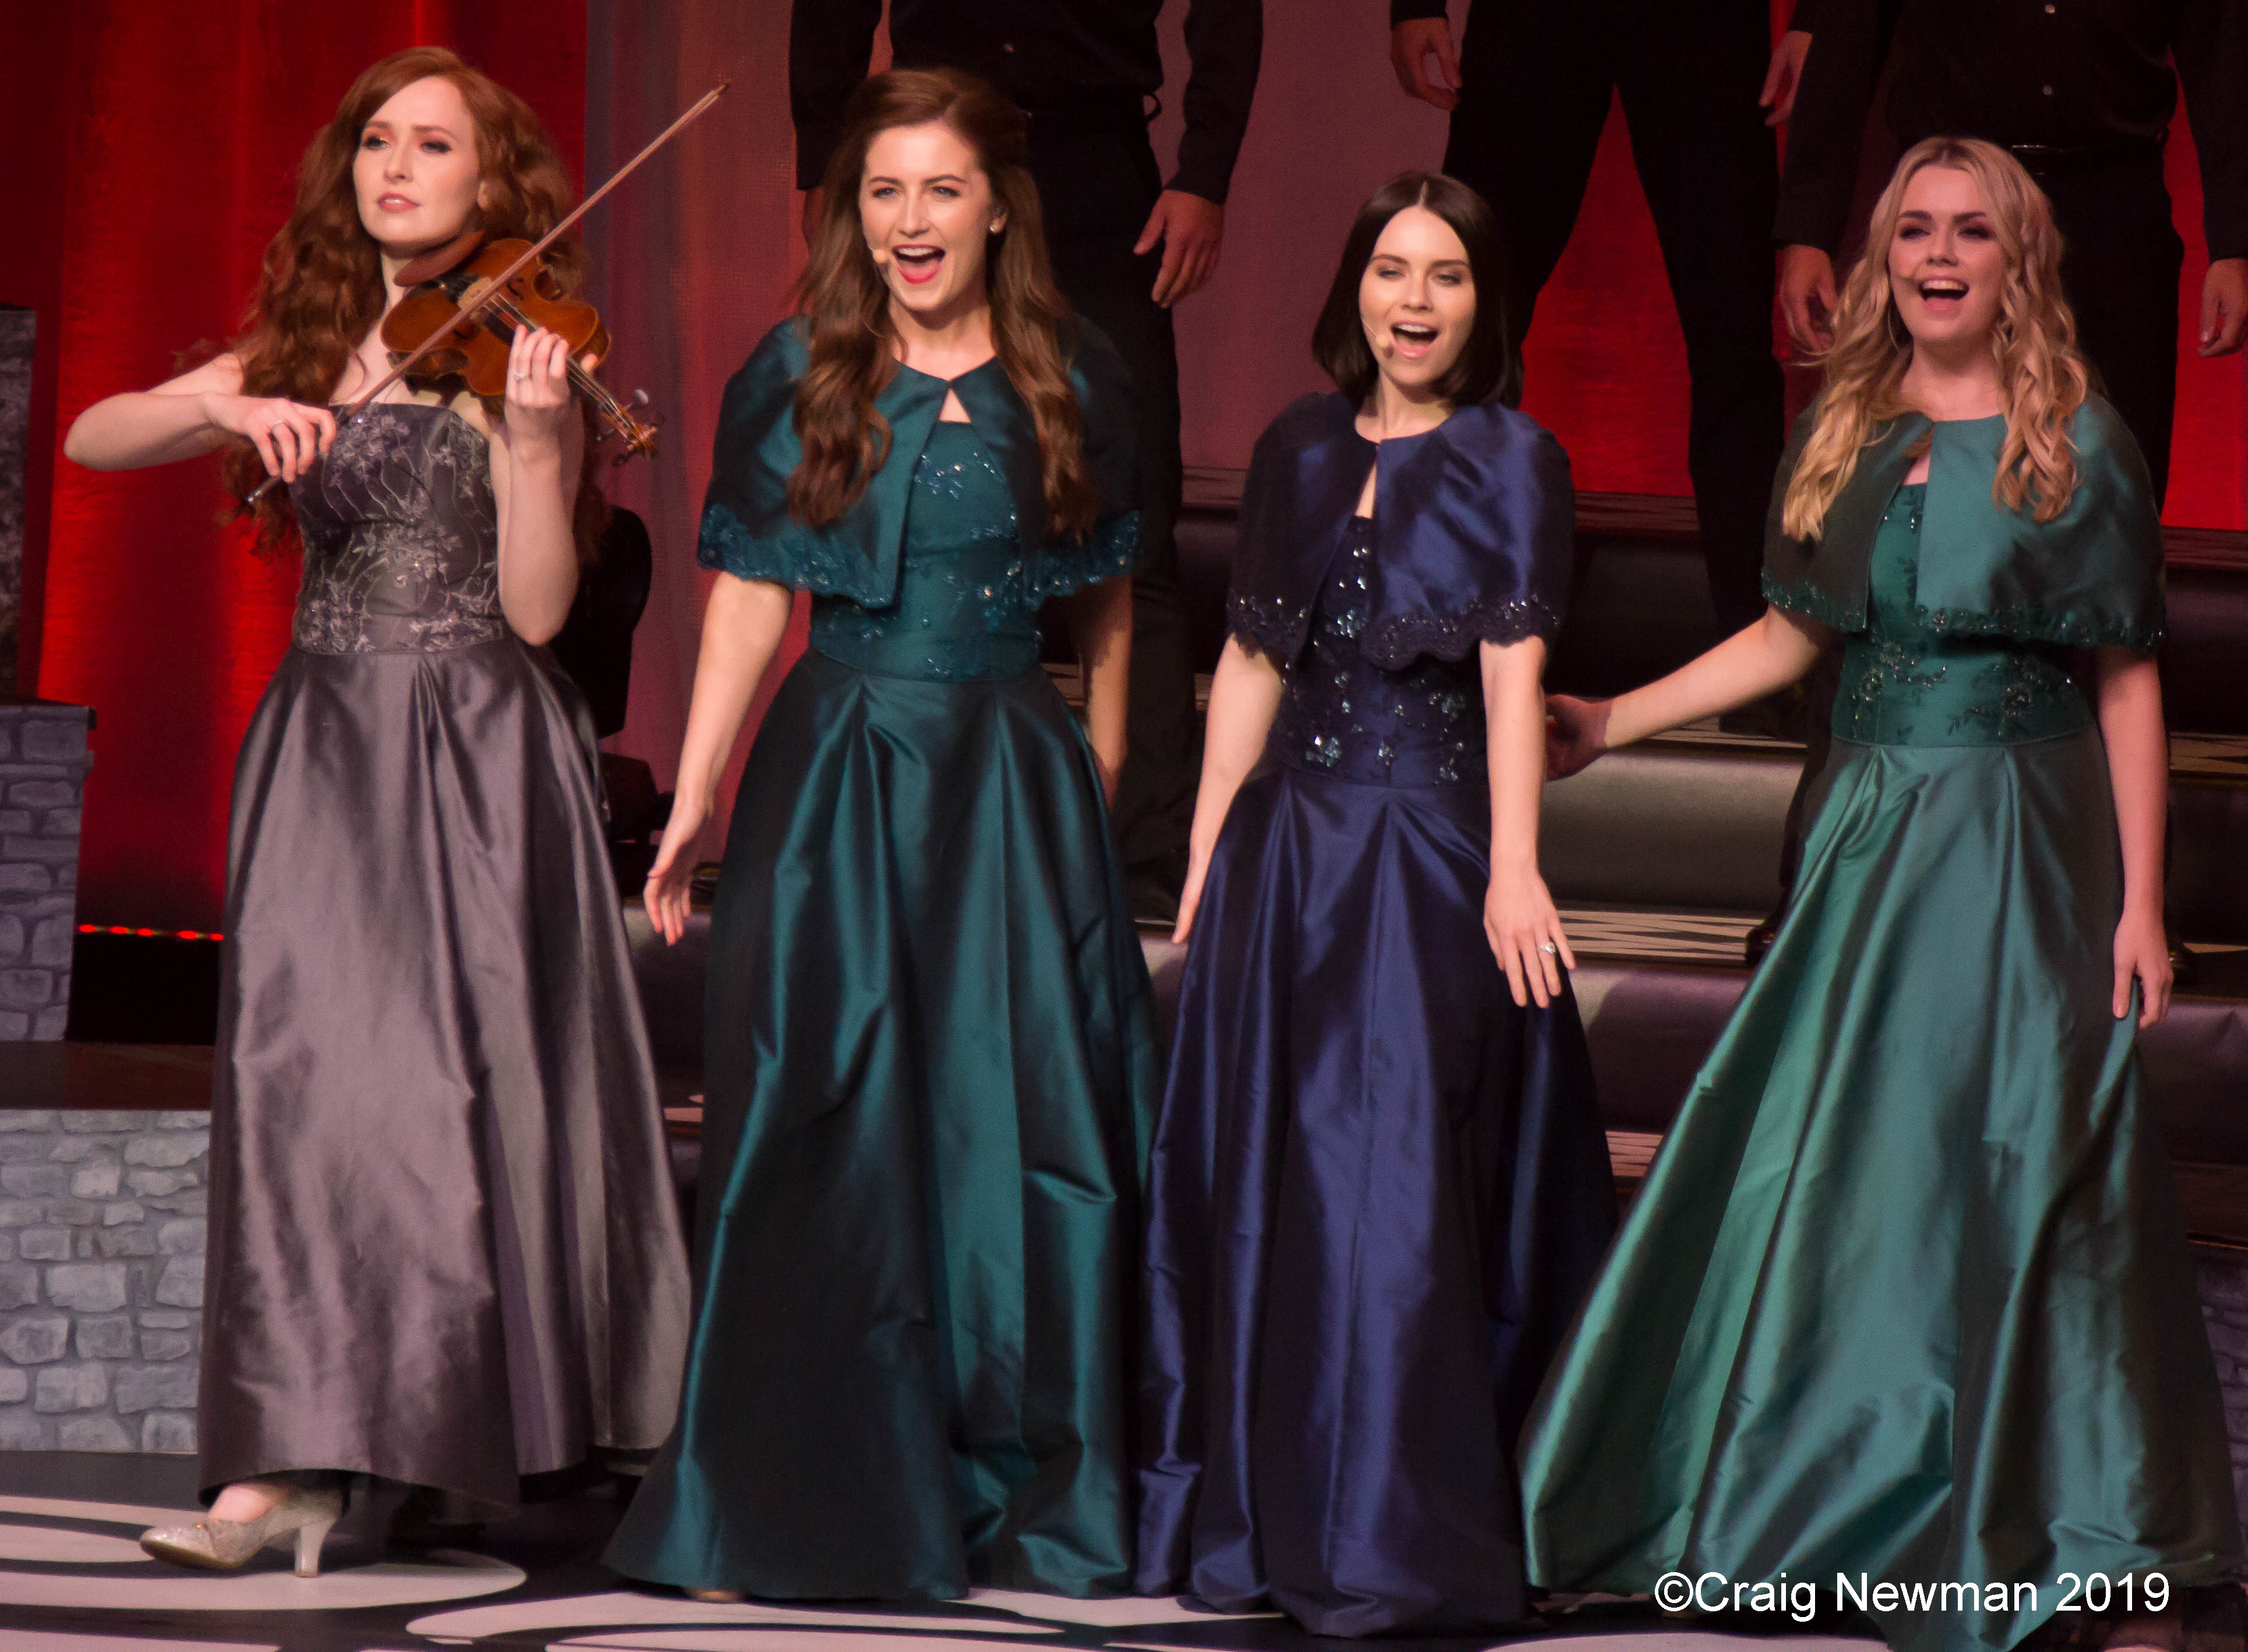 Celtic Woman New Show Ancient Land Captures The Essence Of The Group For Their 2019 Tour Music Sports Entertainment Magazine